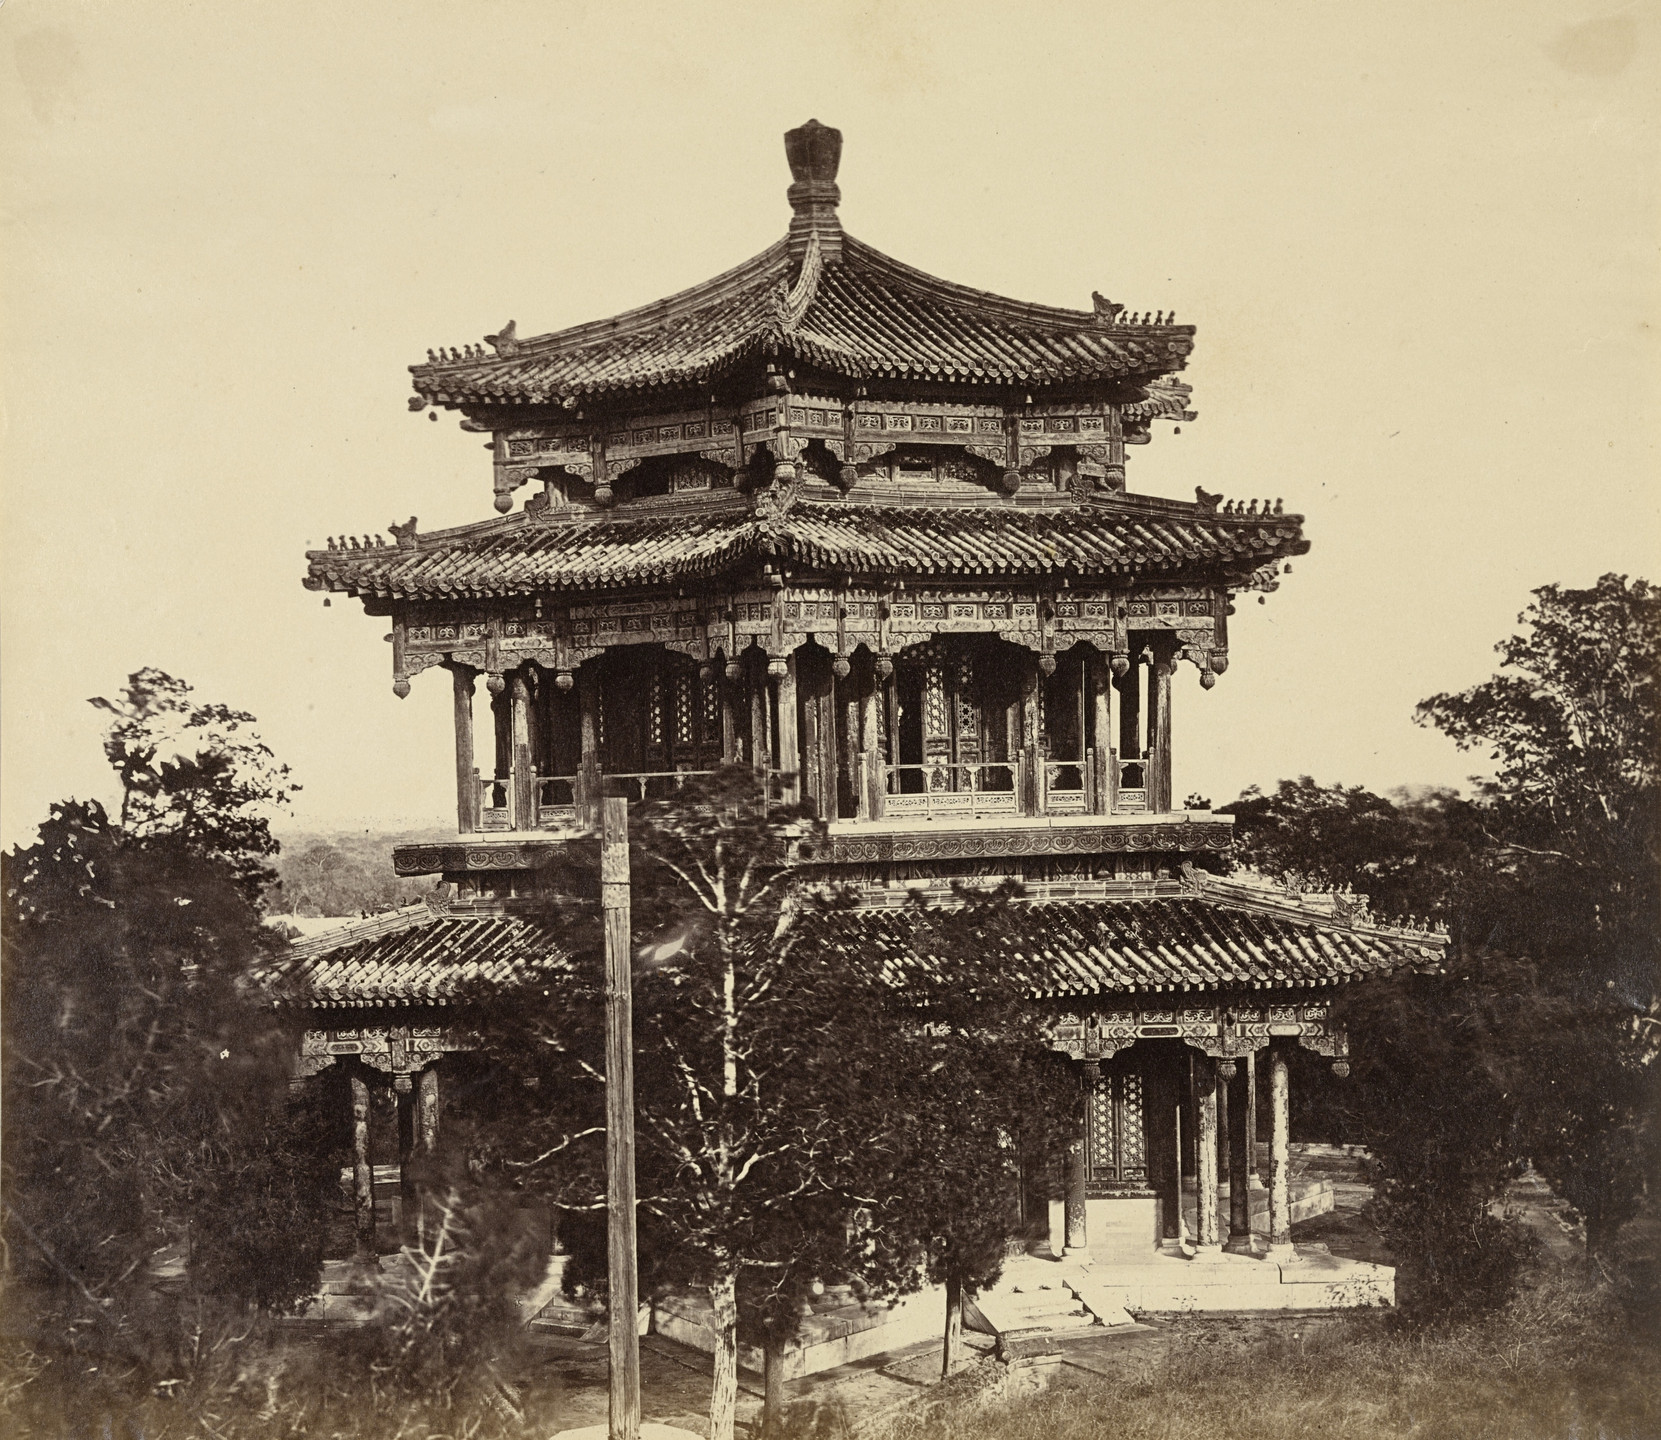 Felice Beato. The Great Imperial Palace Yuen Ming Yuen Before the Burning, Pekin. October 18, 1860